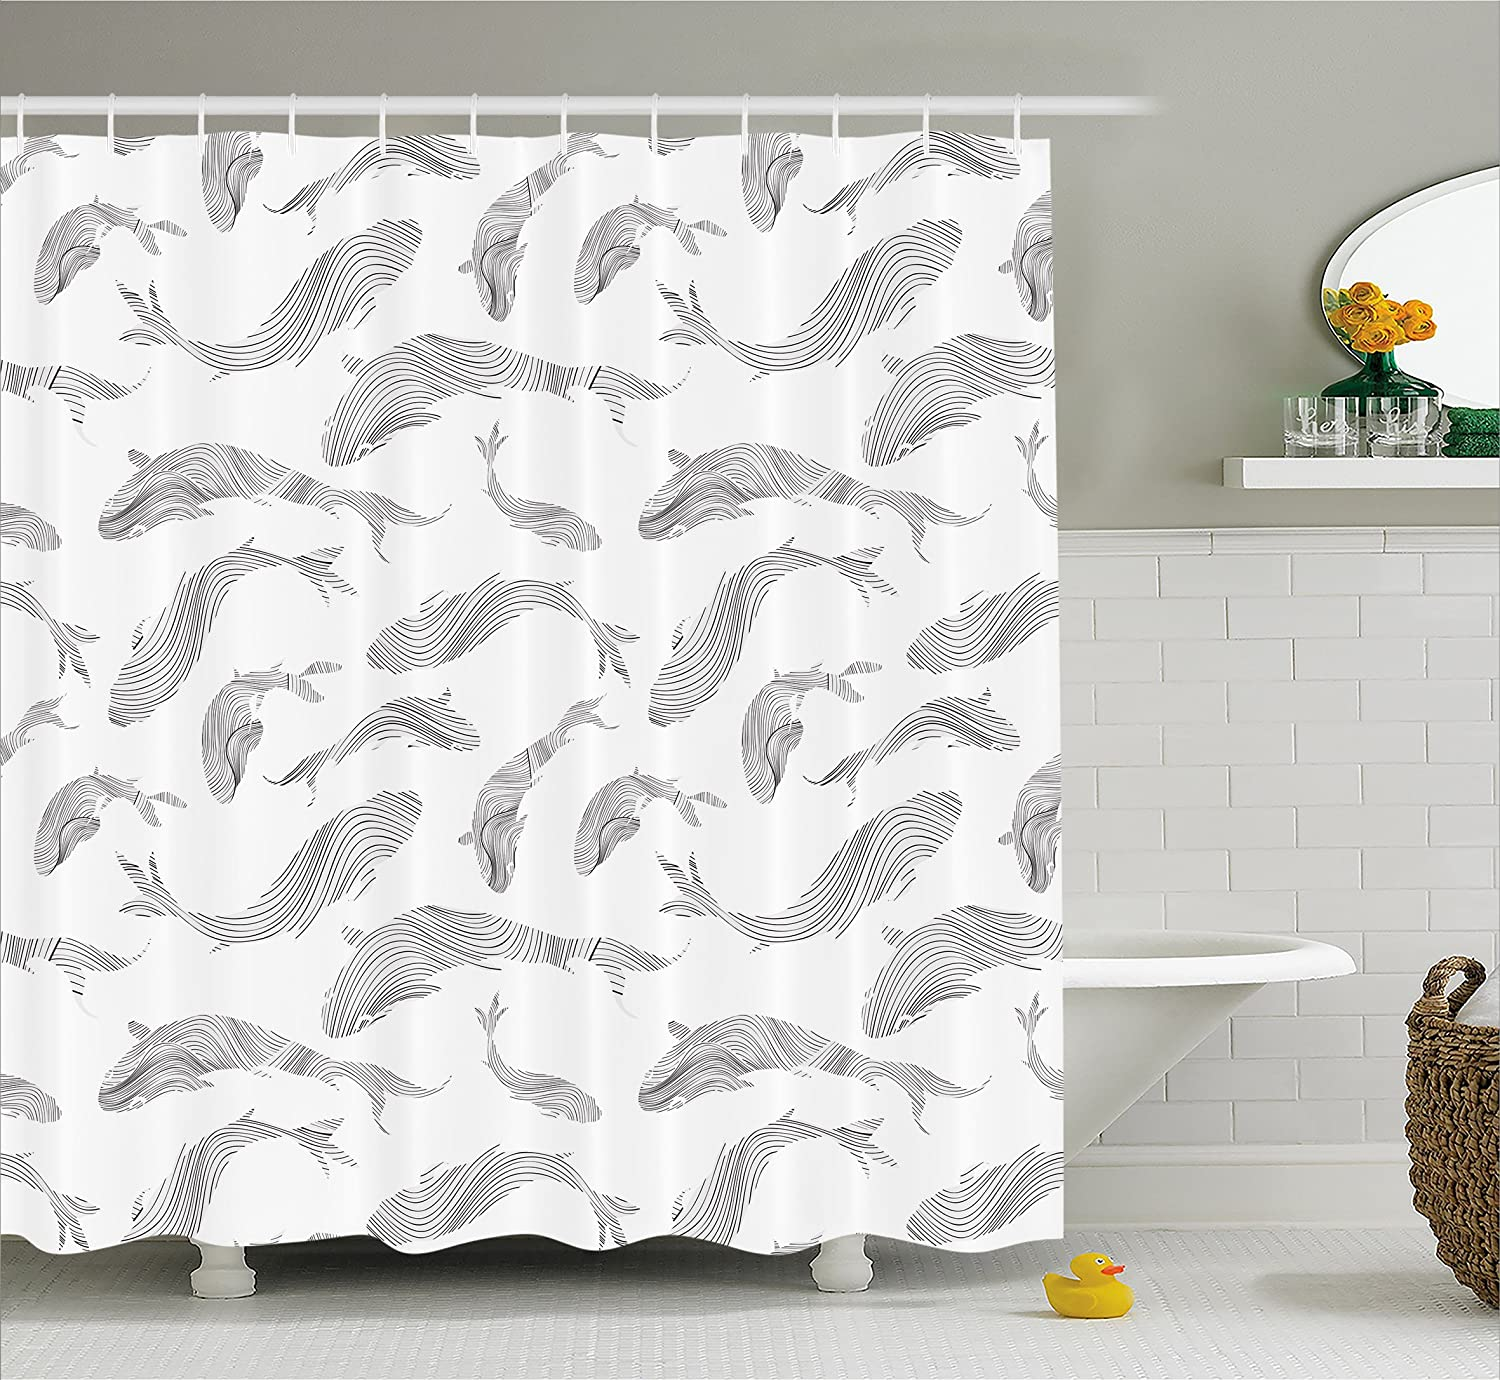 Amazon Unicorn Home and Kids Decor Shower Curtain by Ambesonne